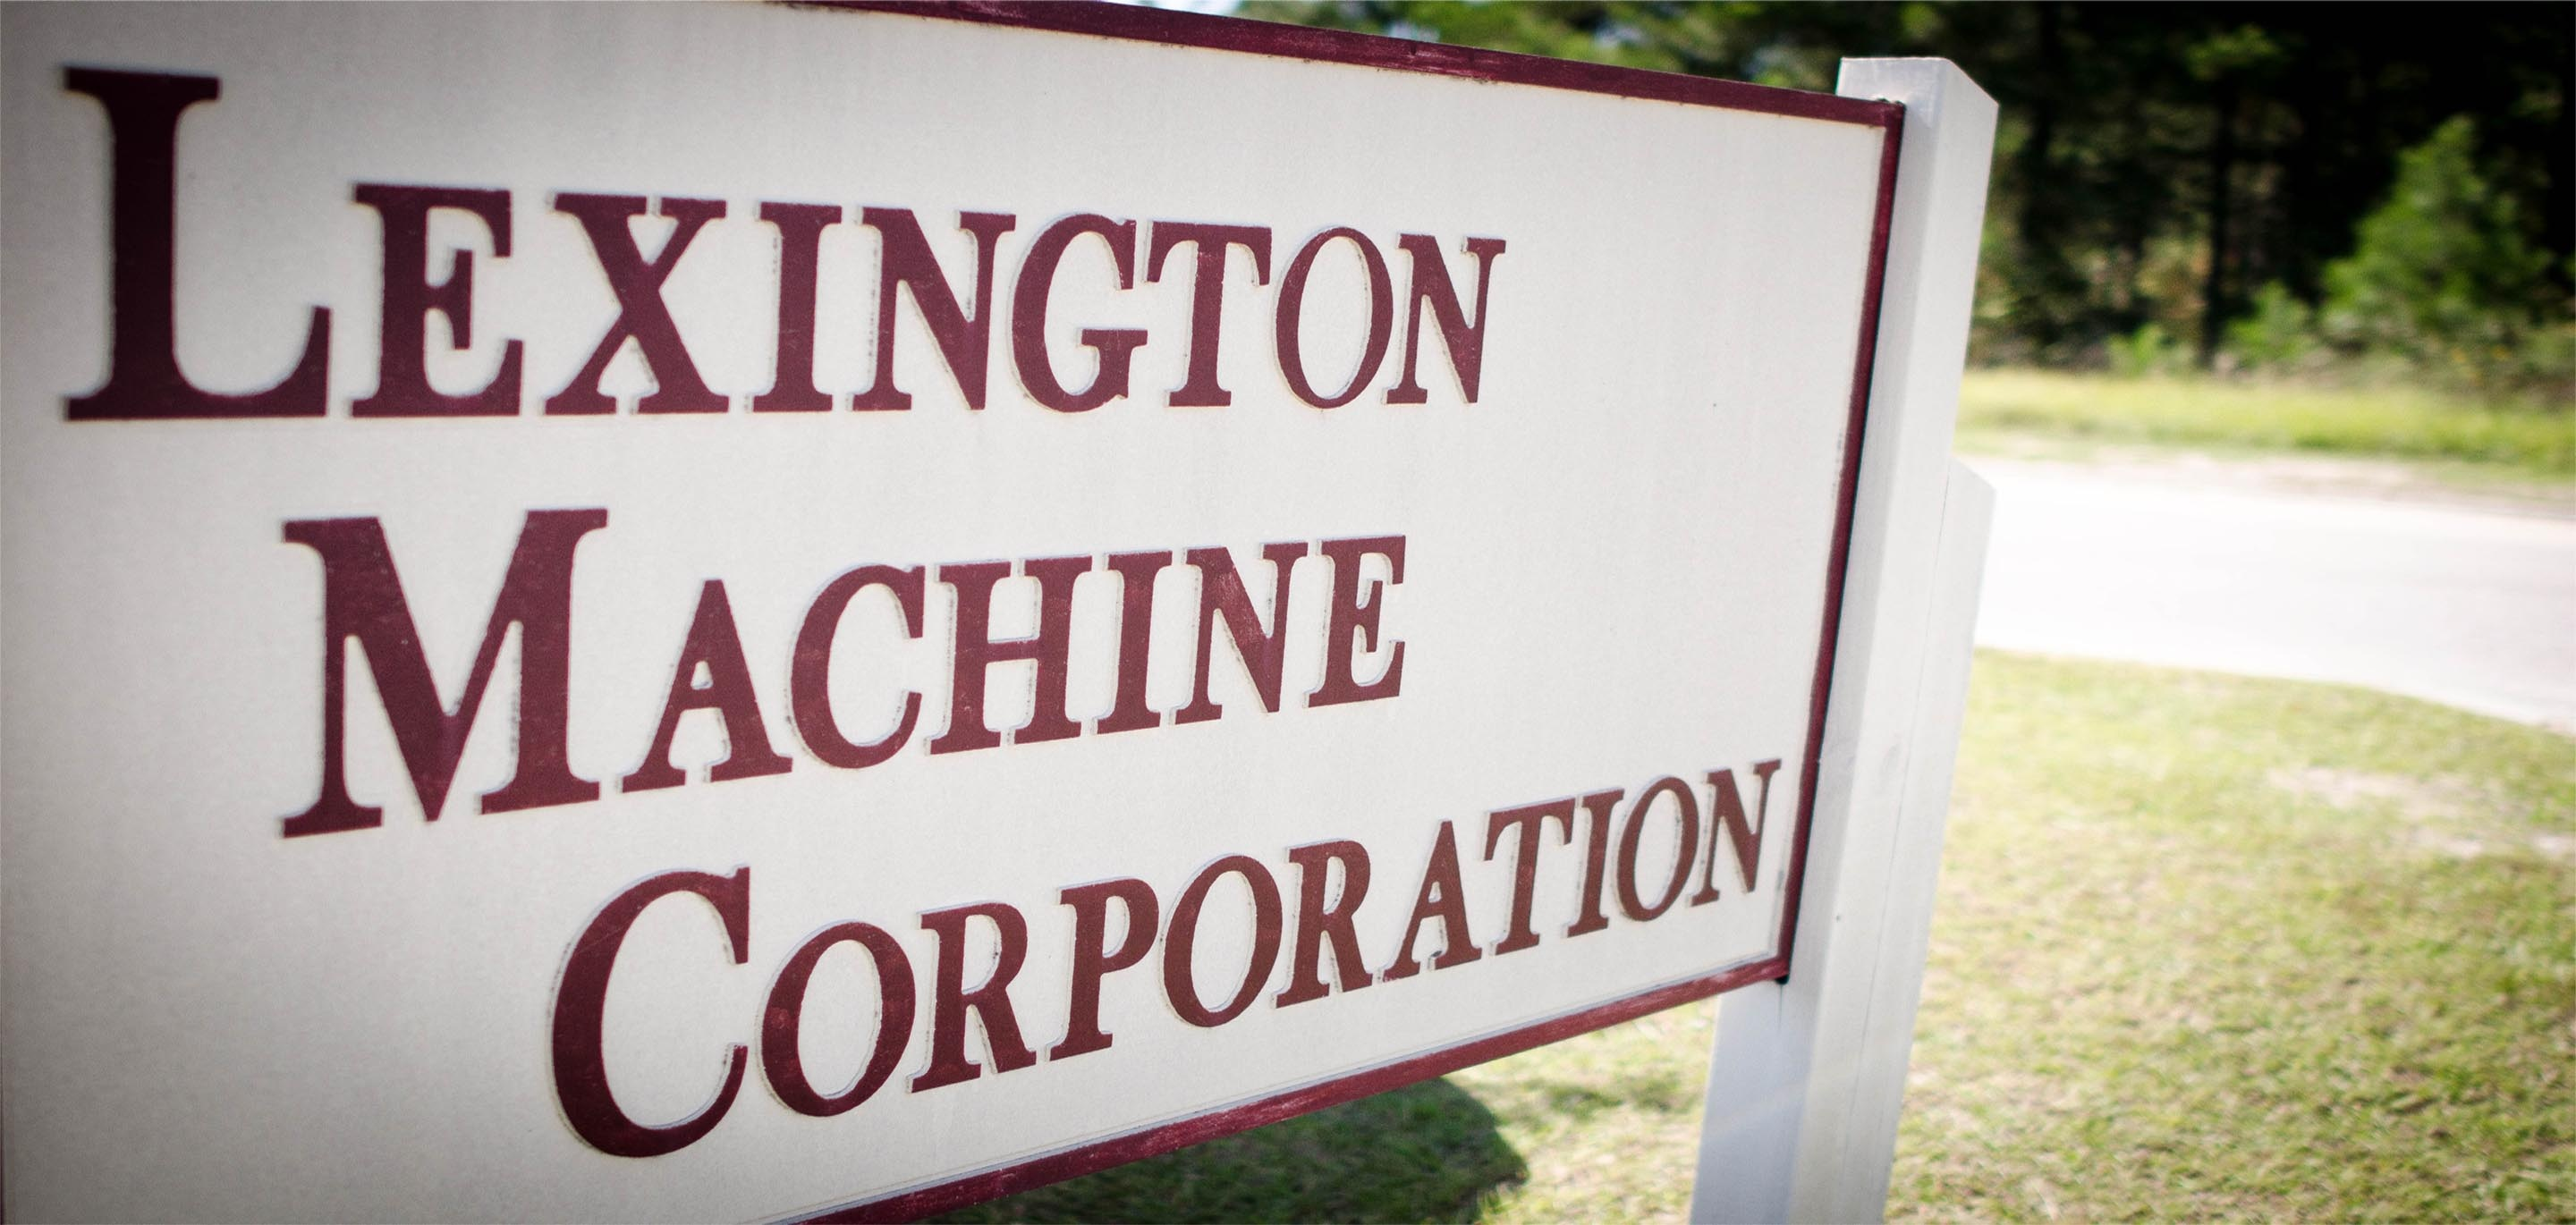 Lexington Machine Corporation